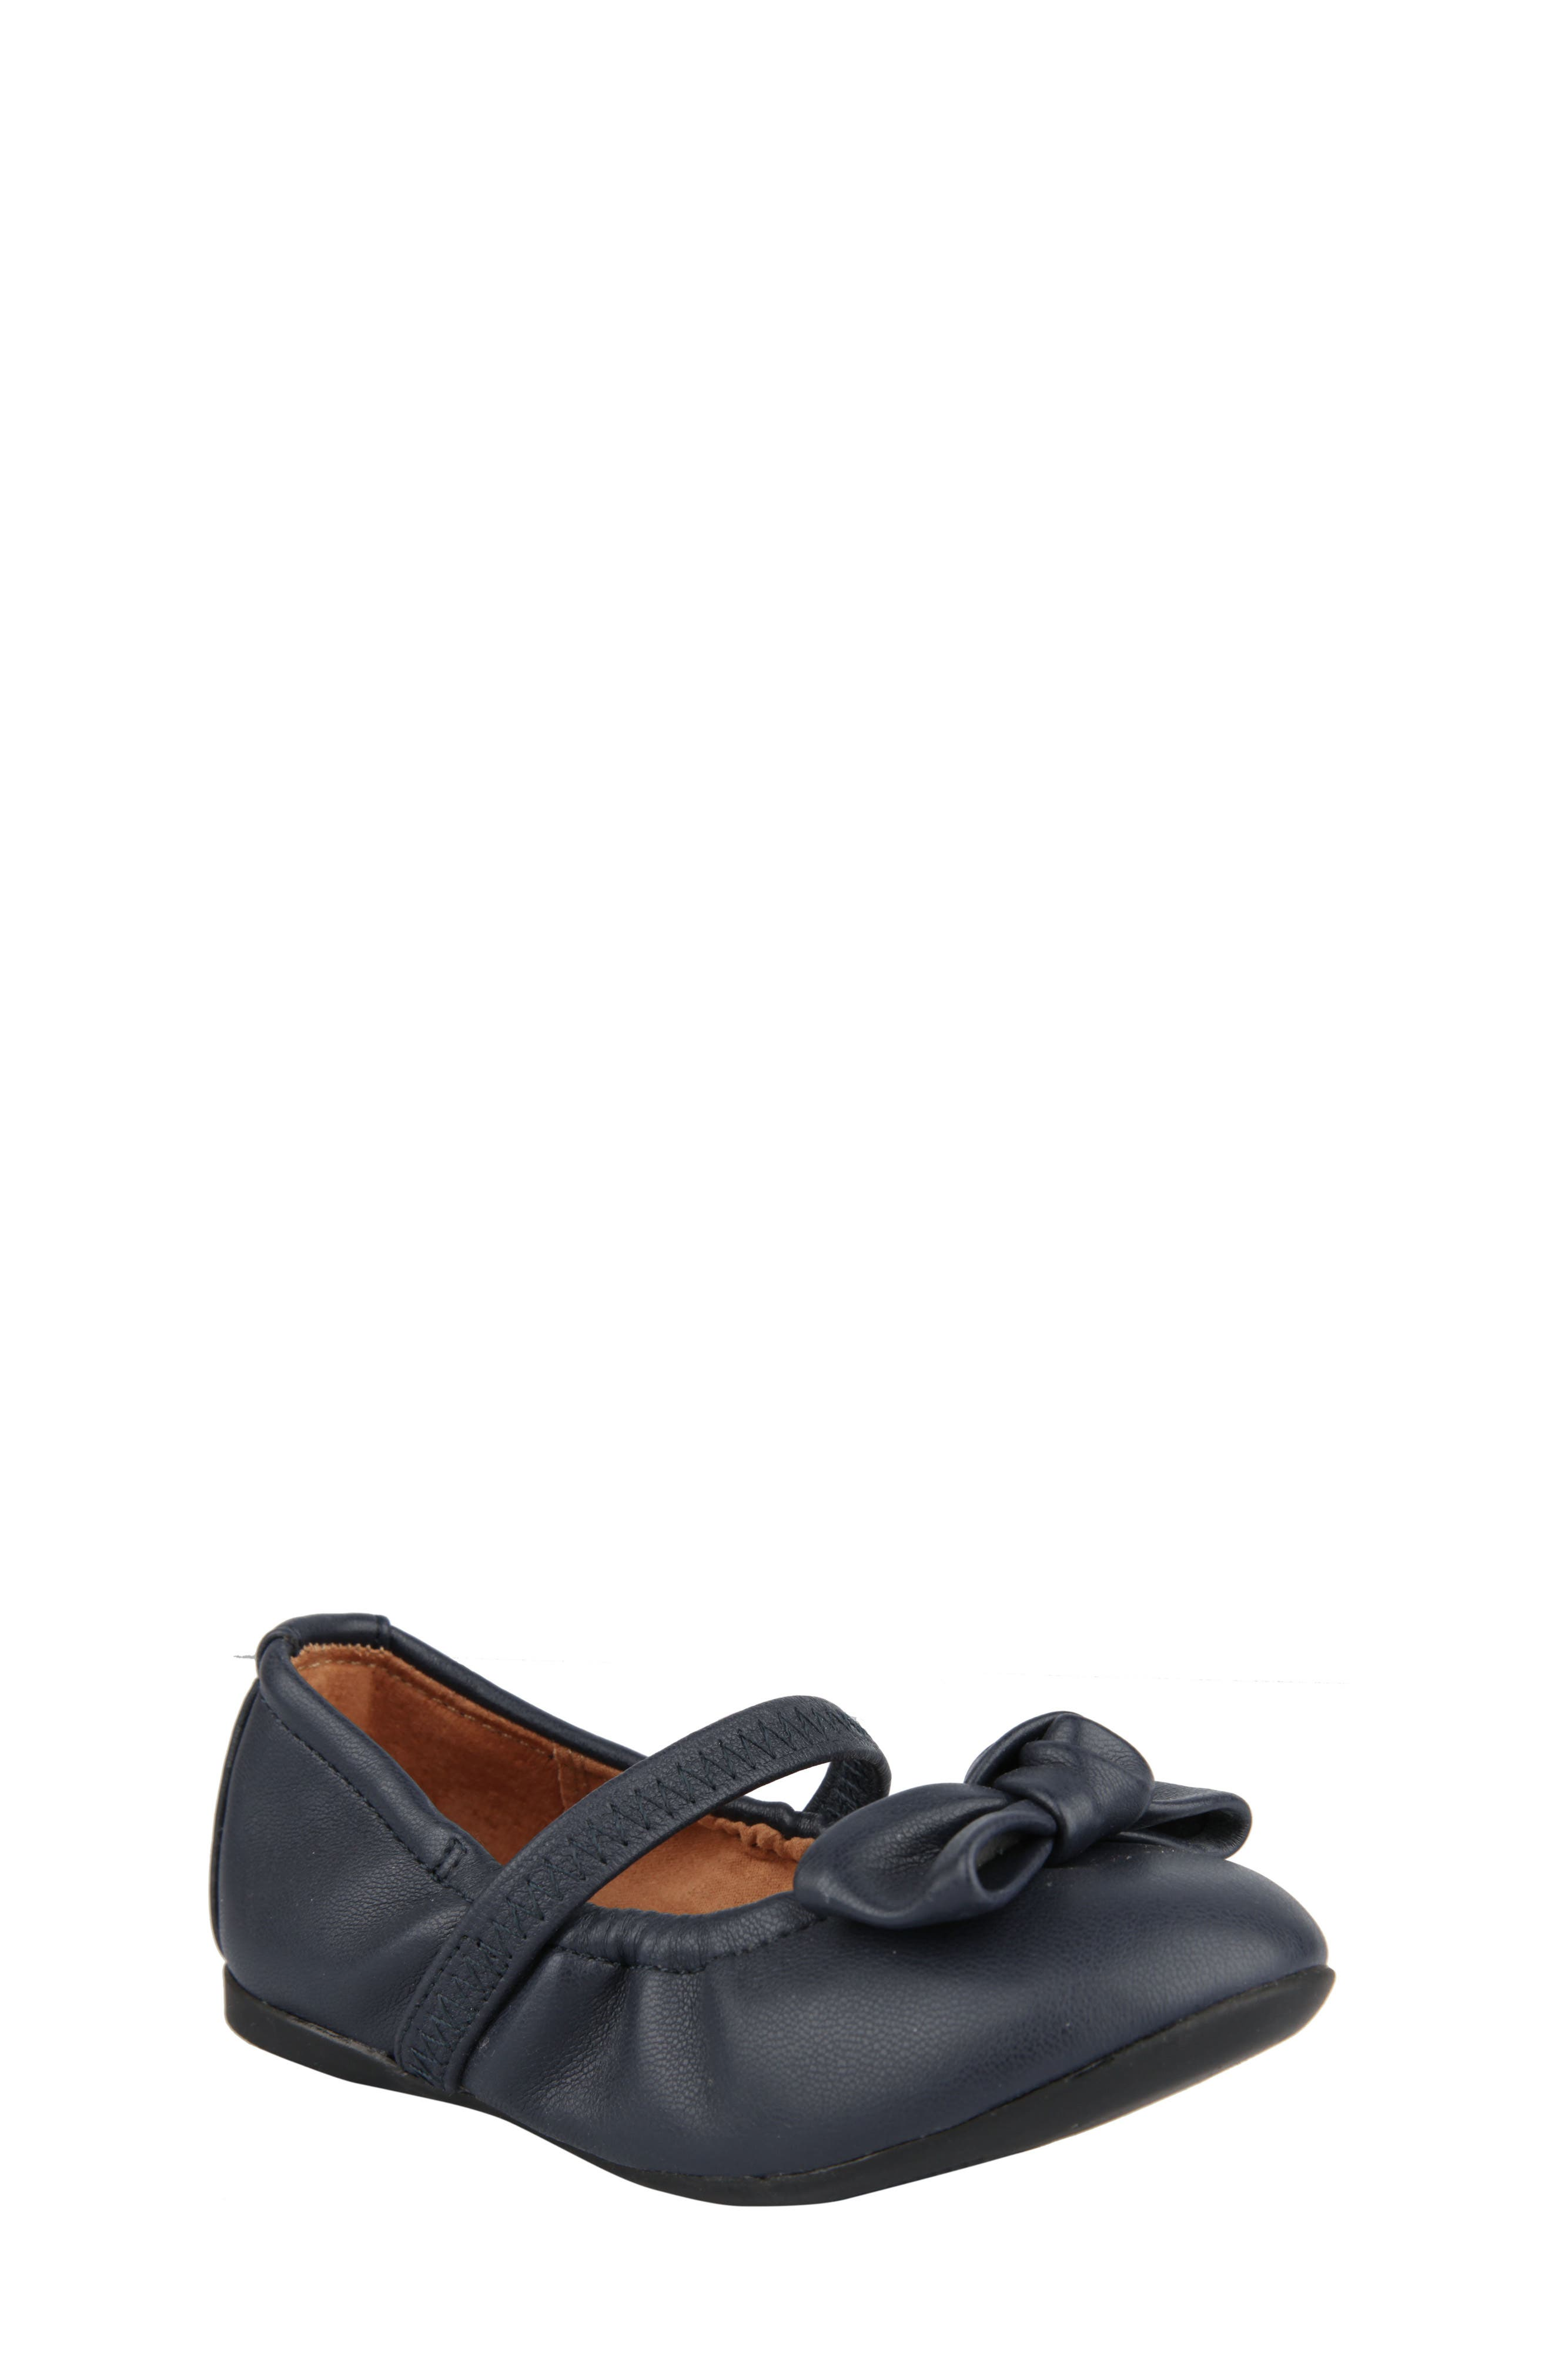 Karla Mary Jane Ballet Flat,                             Main thumbnail 1, color,                             Navy Faux Leather